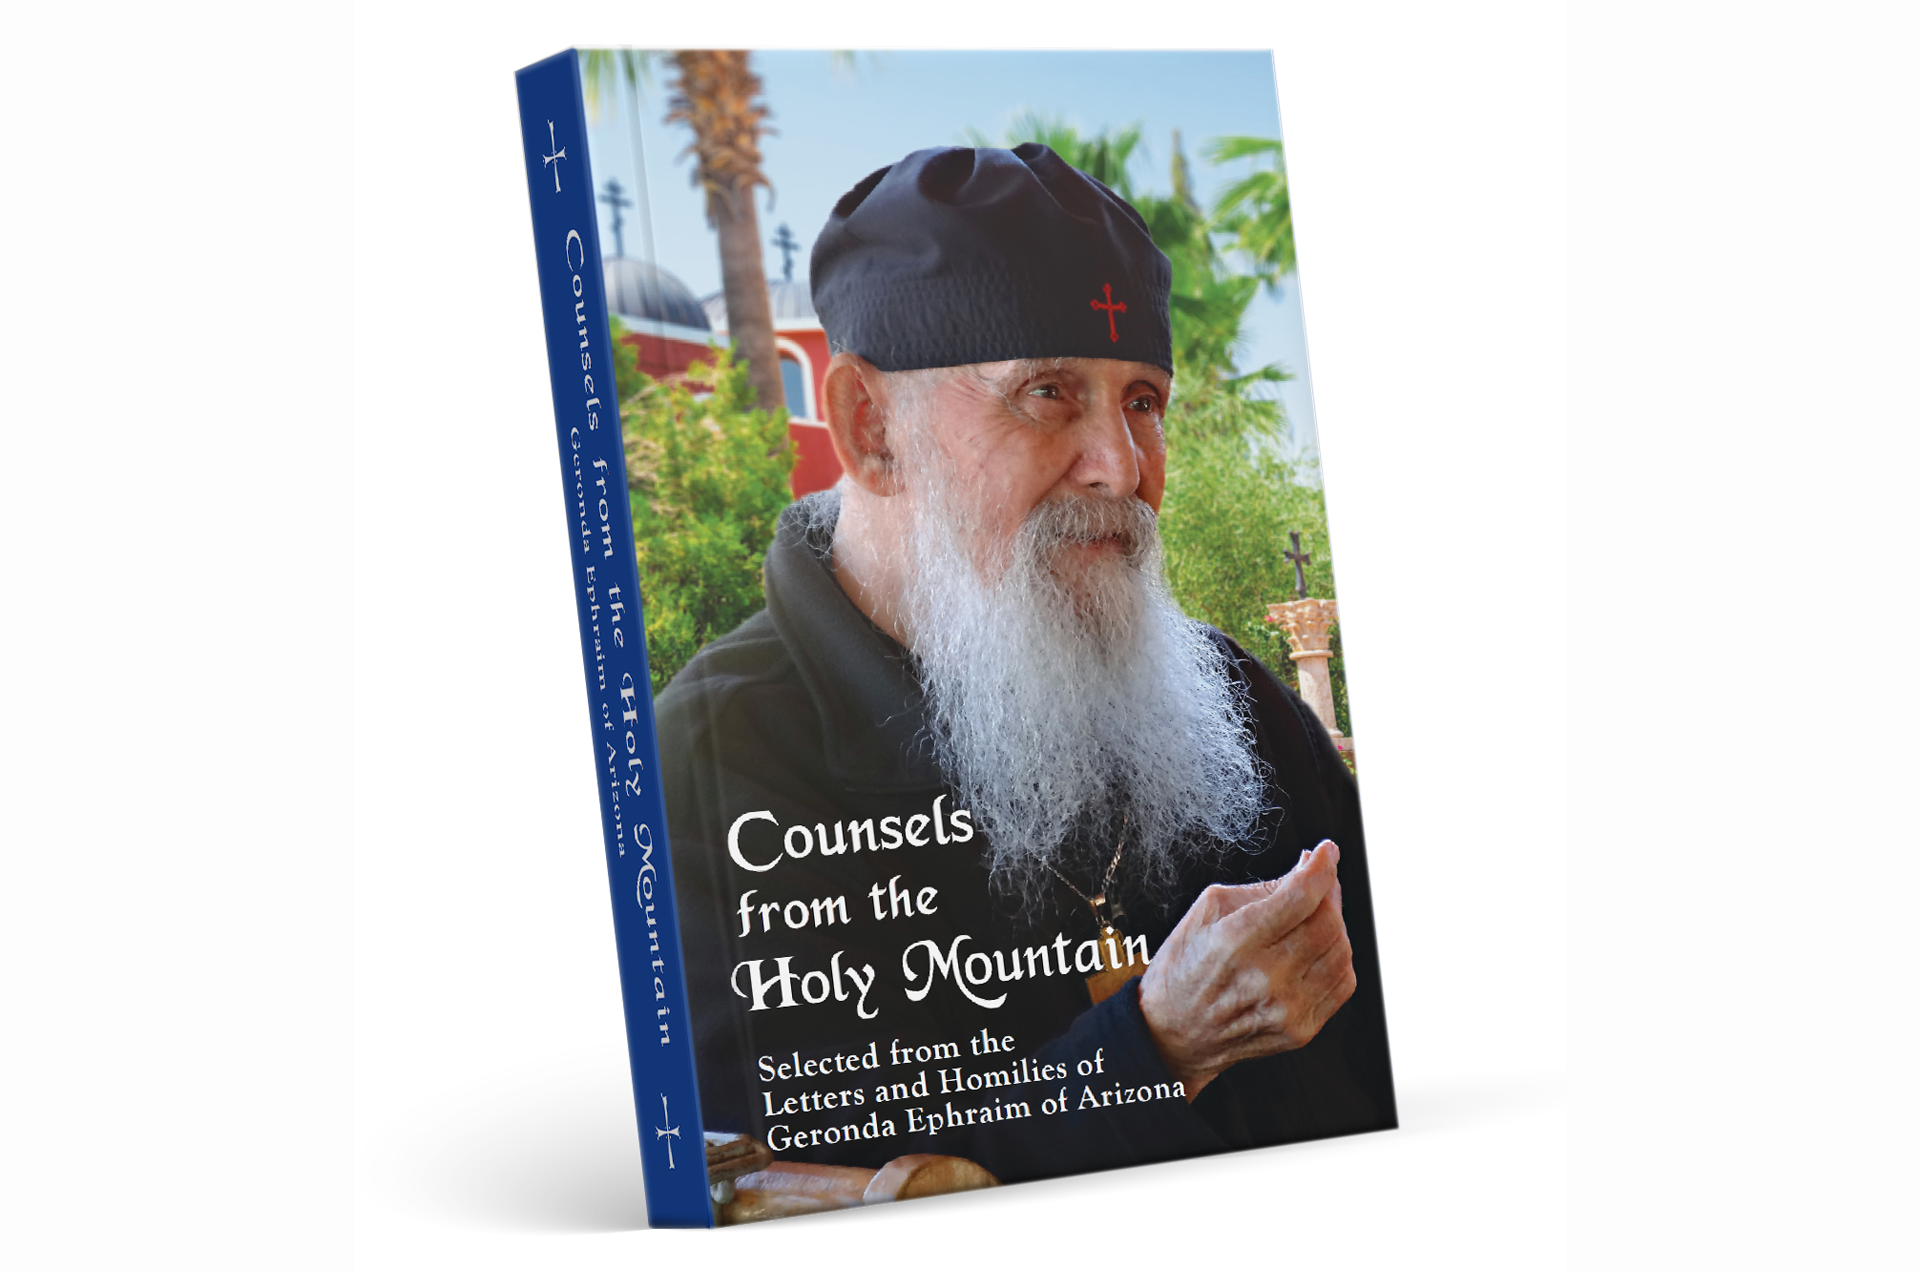 Counsels from the Holy Mountain: Selected from the Letters and Homilies of Elder Ephraim  (Hardcover)  Out of Stock